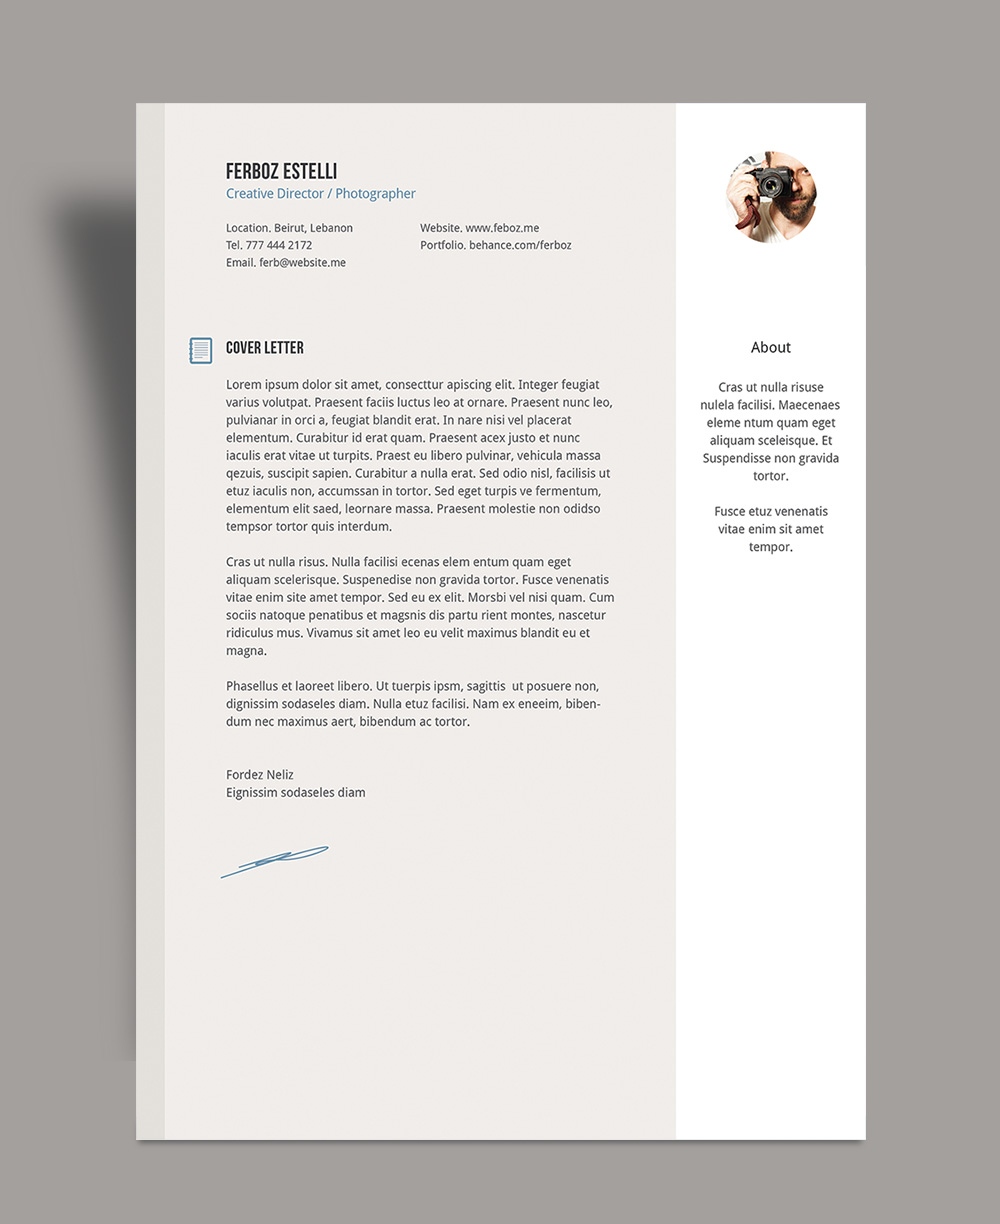 cover letter for graphic designer position - free professional resume cv template with cover letter